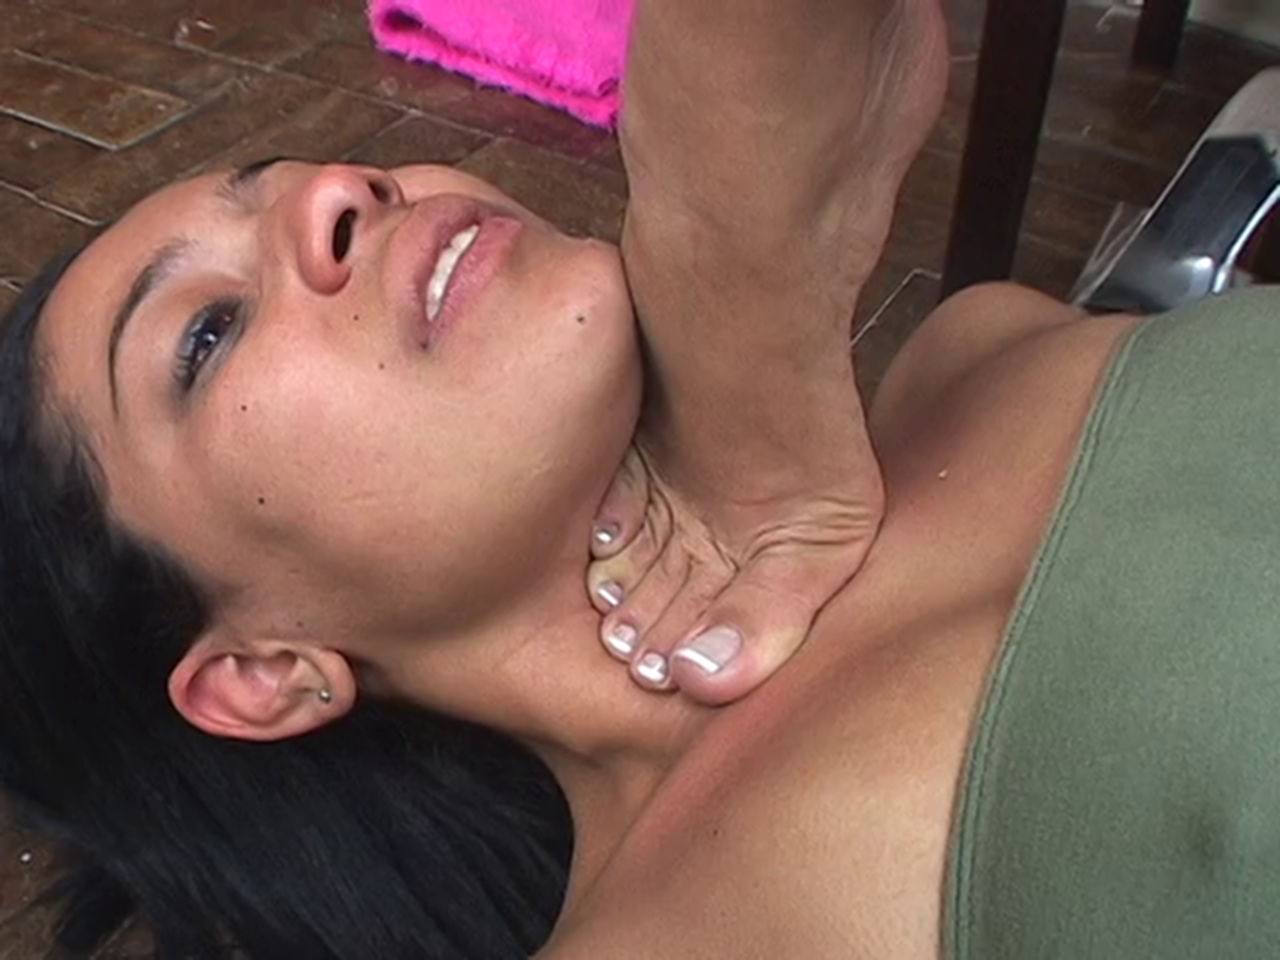 19 year old dominatrix snaps nuts with rubber band 9